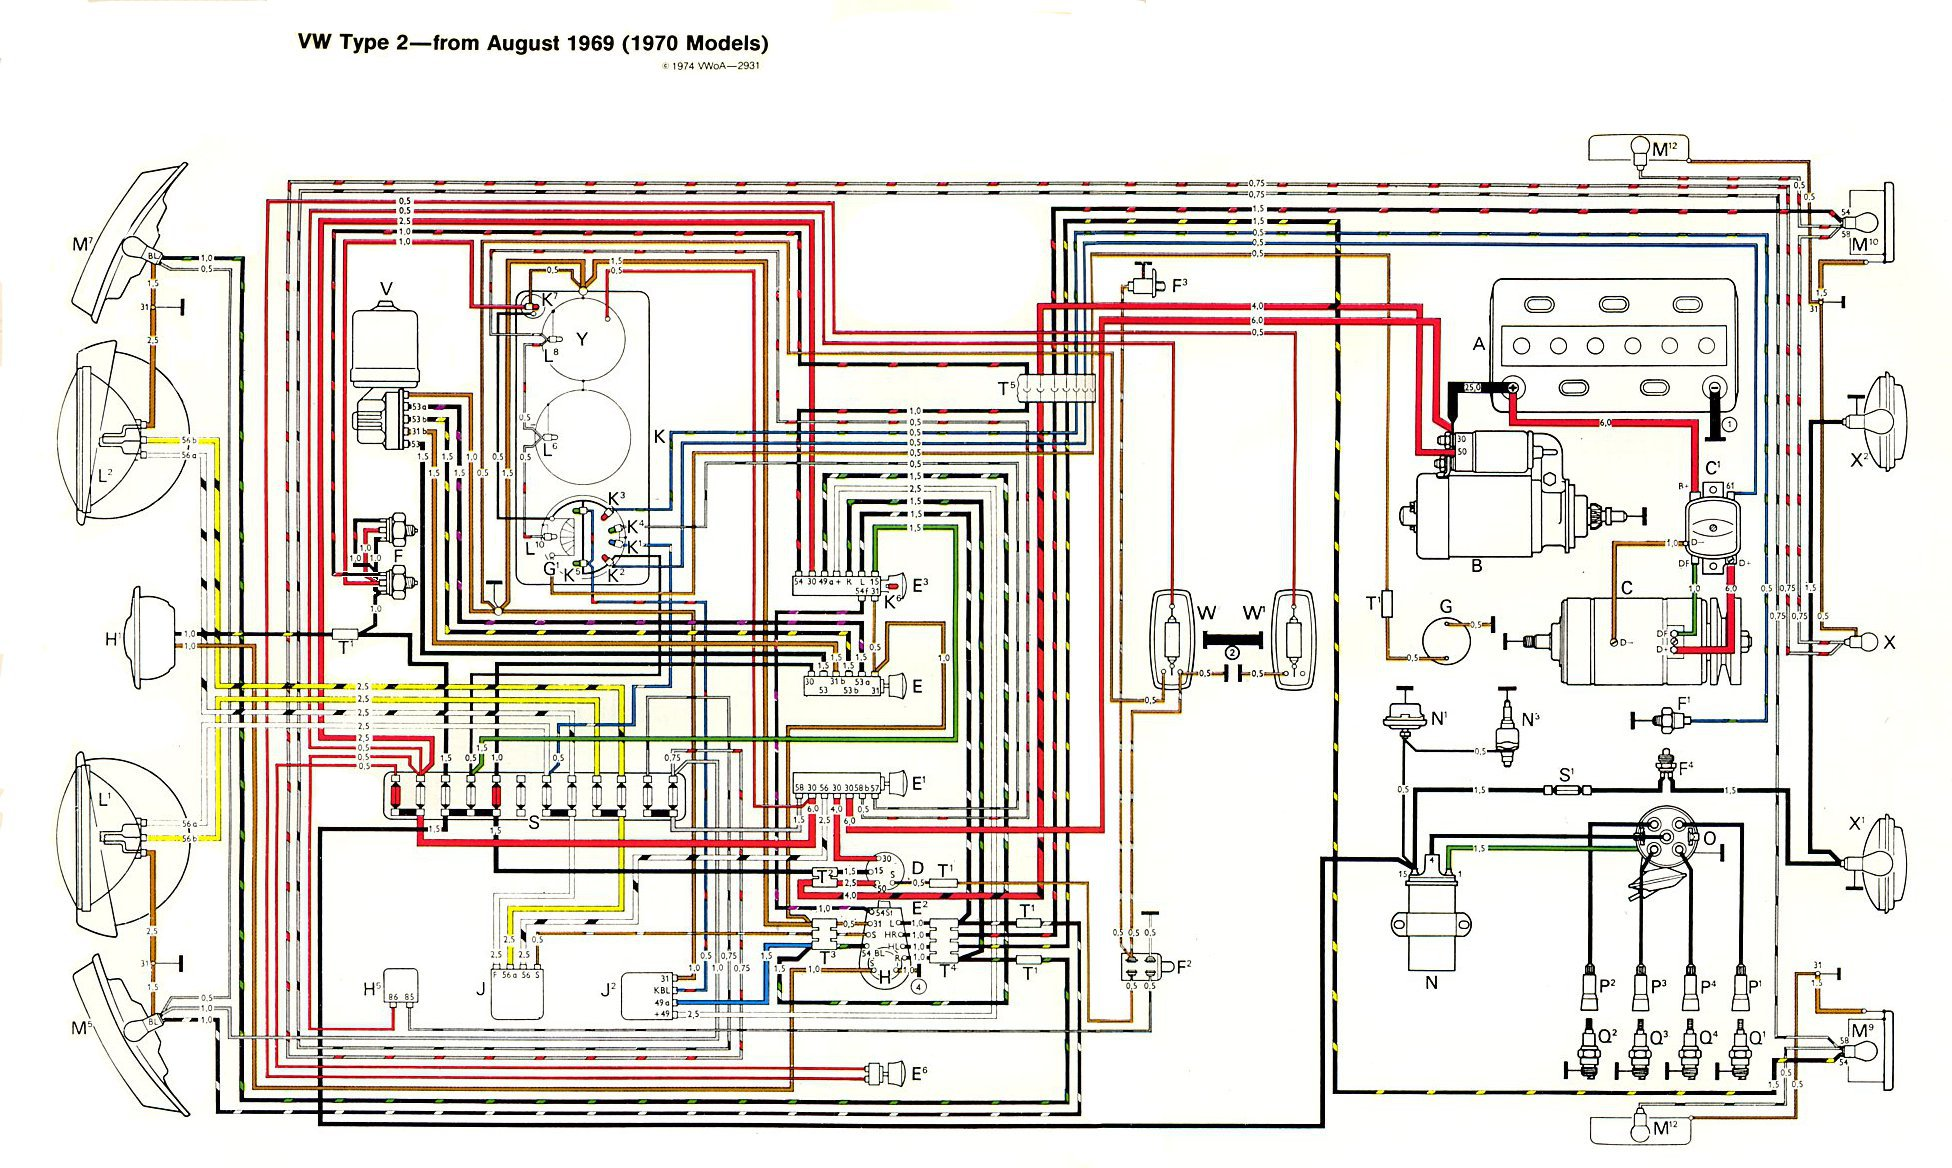 baybus_70 thesamba com type 2 wiring diagrams 1971 vw bus wiring diagram at highcare.asia